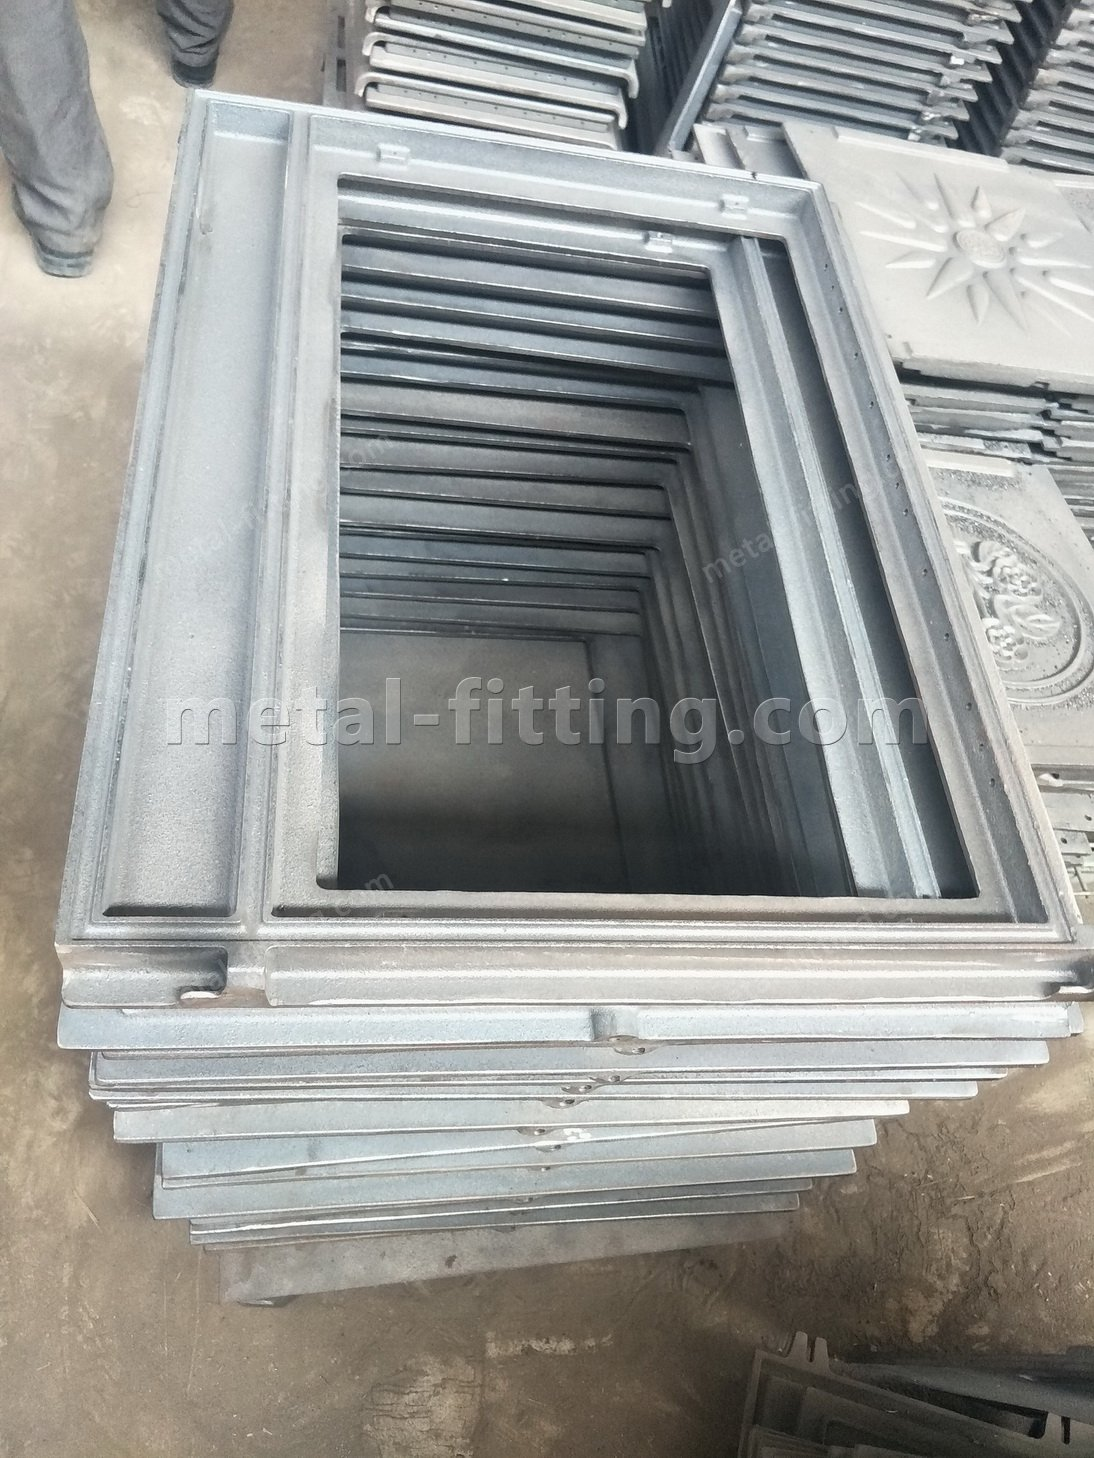 customization steel plate or other steel metal itemss-IMG20180726102952